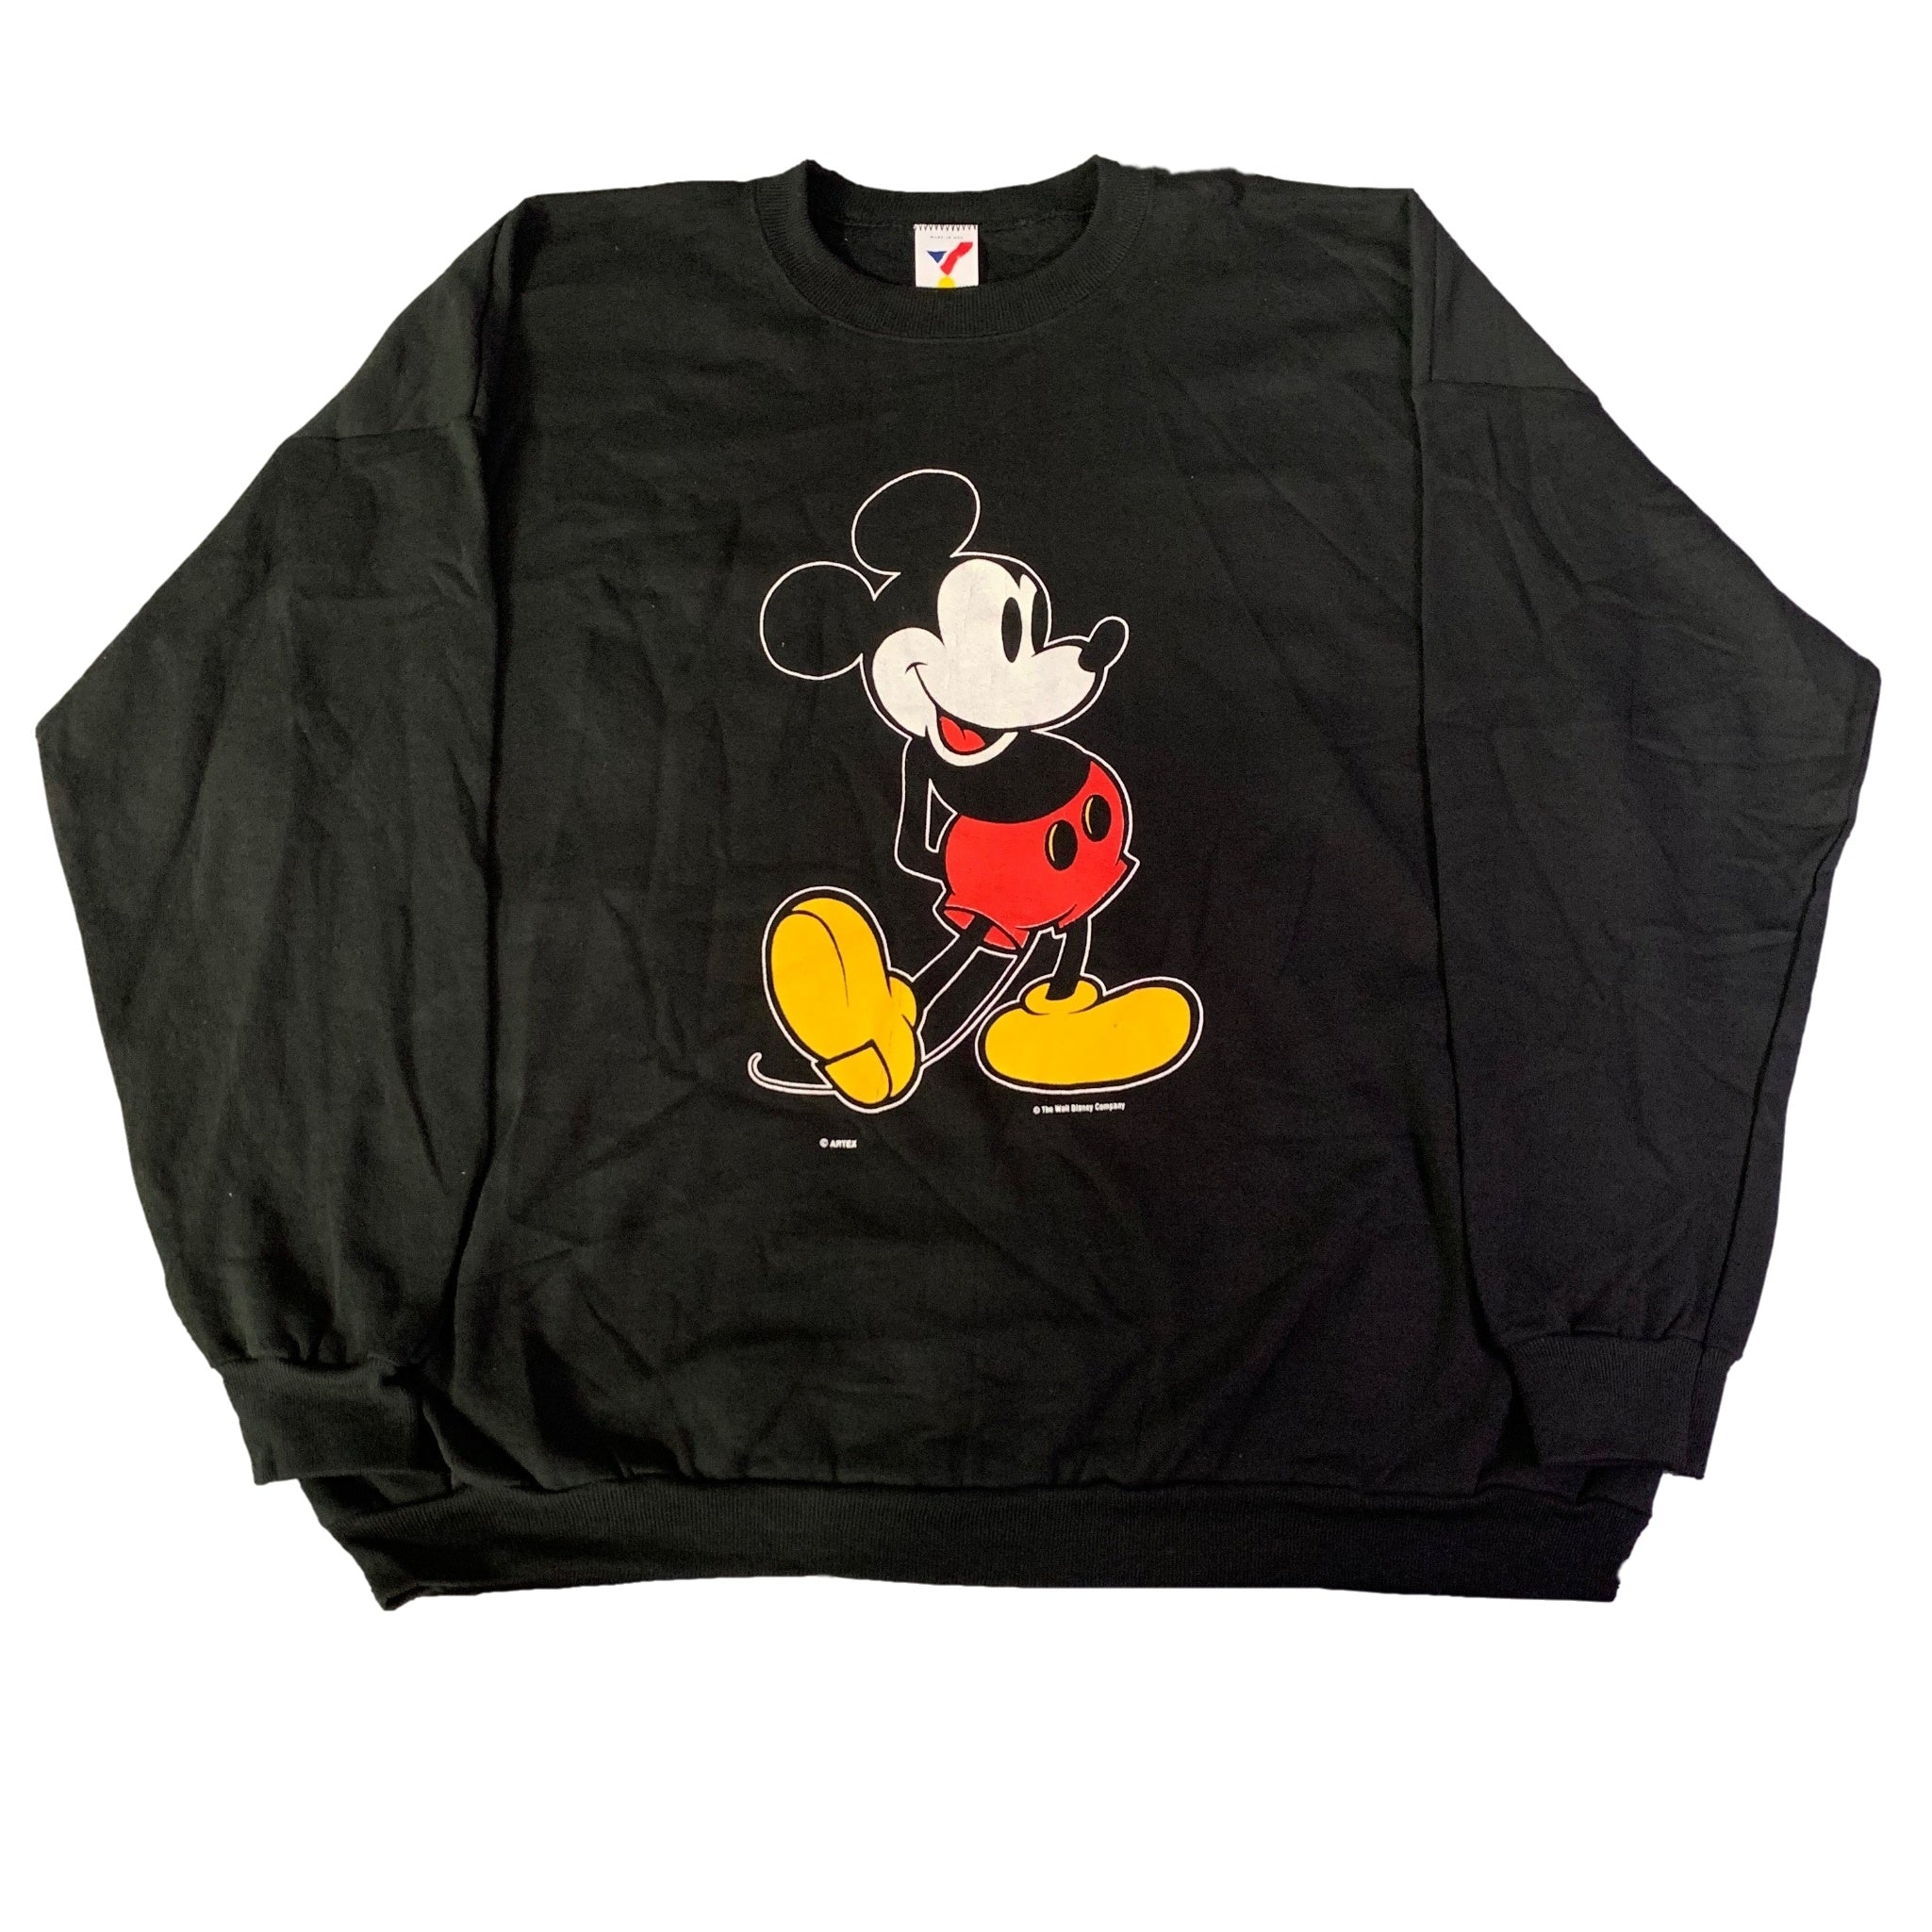 "Vintage Mickey Mouse ""Artex"" Crewneck Sweatshirt"